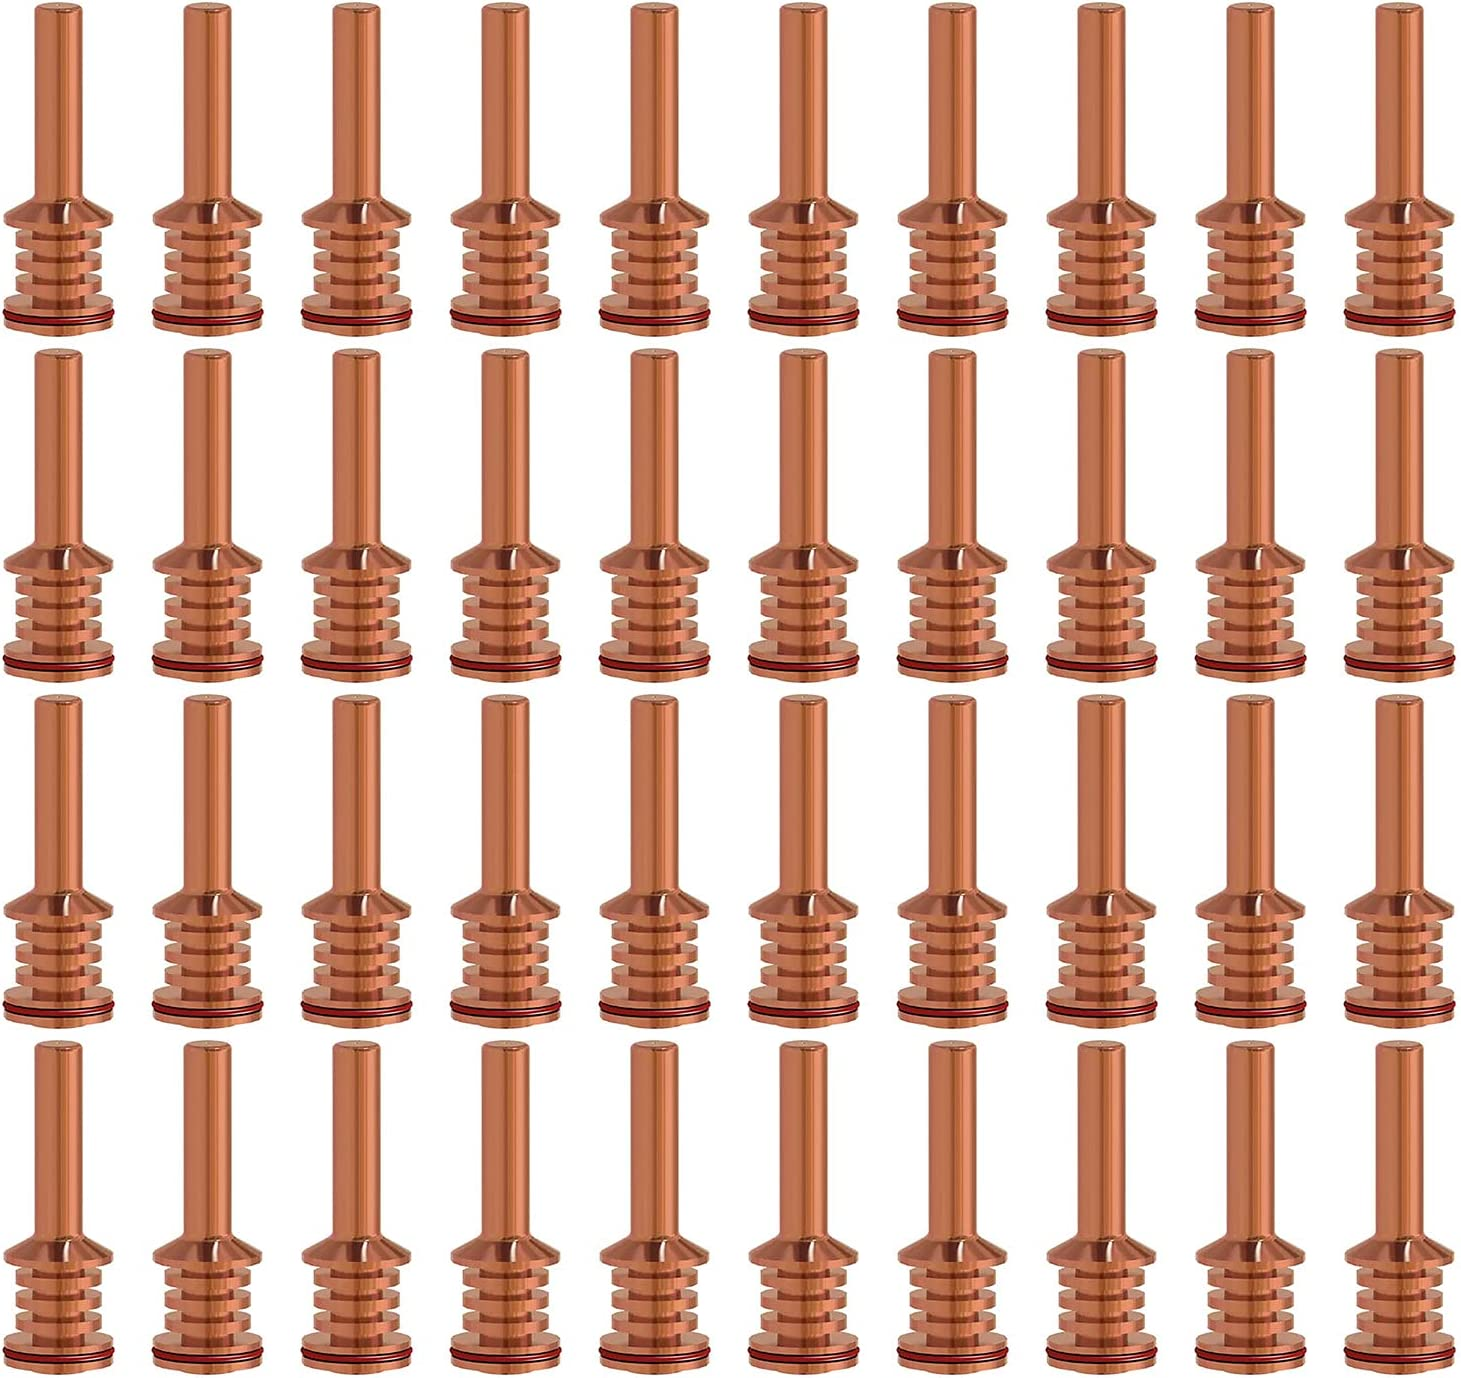 KEMAO 40Pcs 420132 Plasma Cutting Electrode Tips Fit for PMX 30 AIR Plasma Cutting Torch Consumable : Tools & Home Improvement